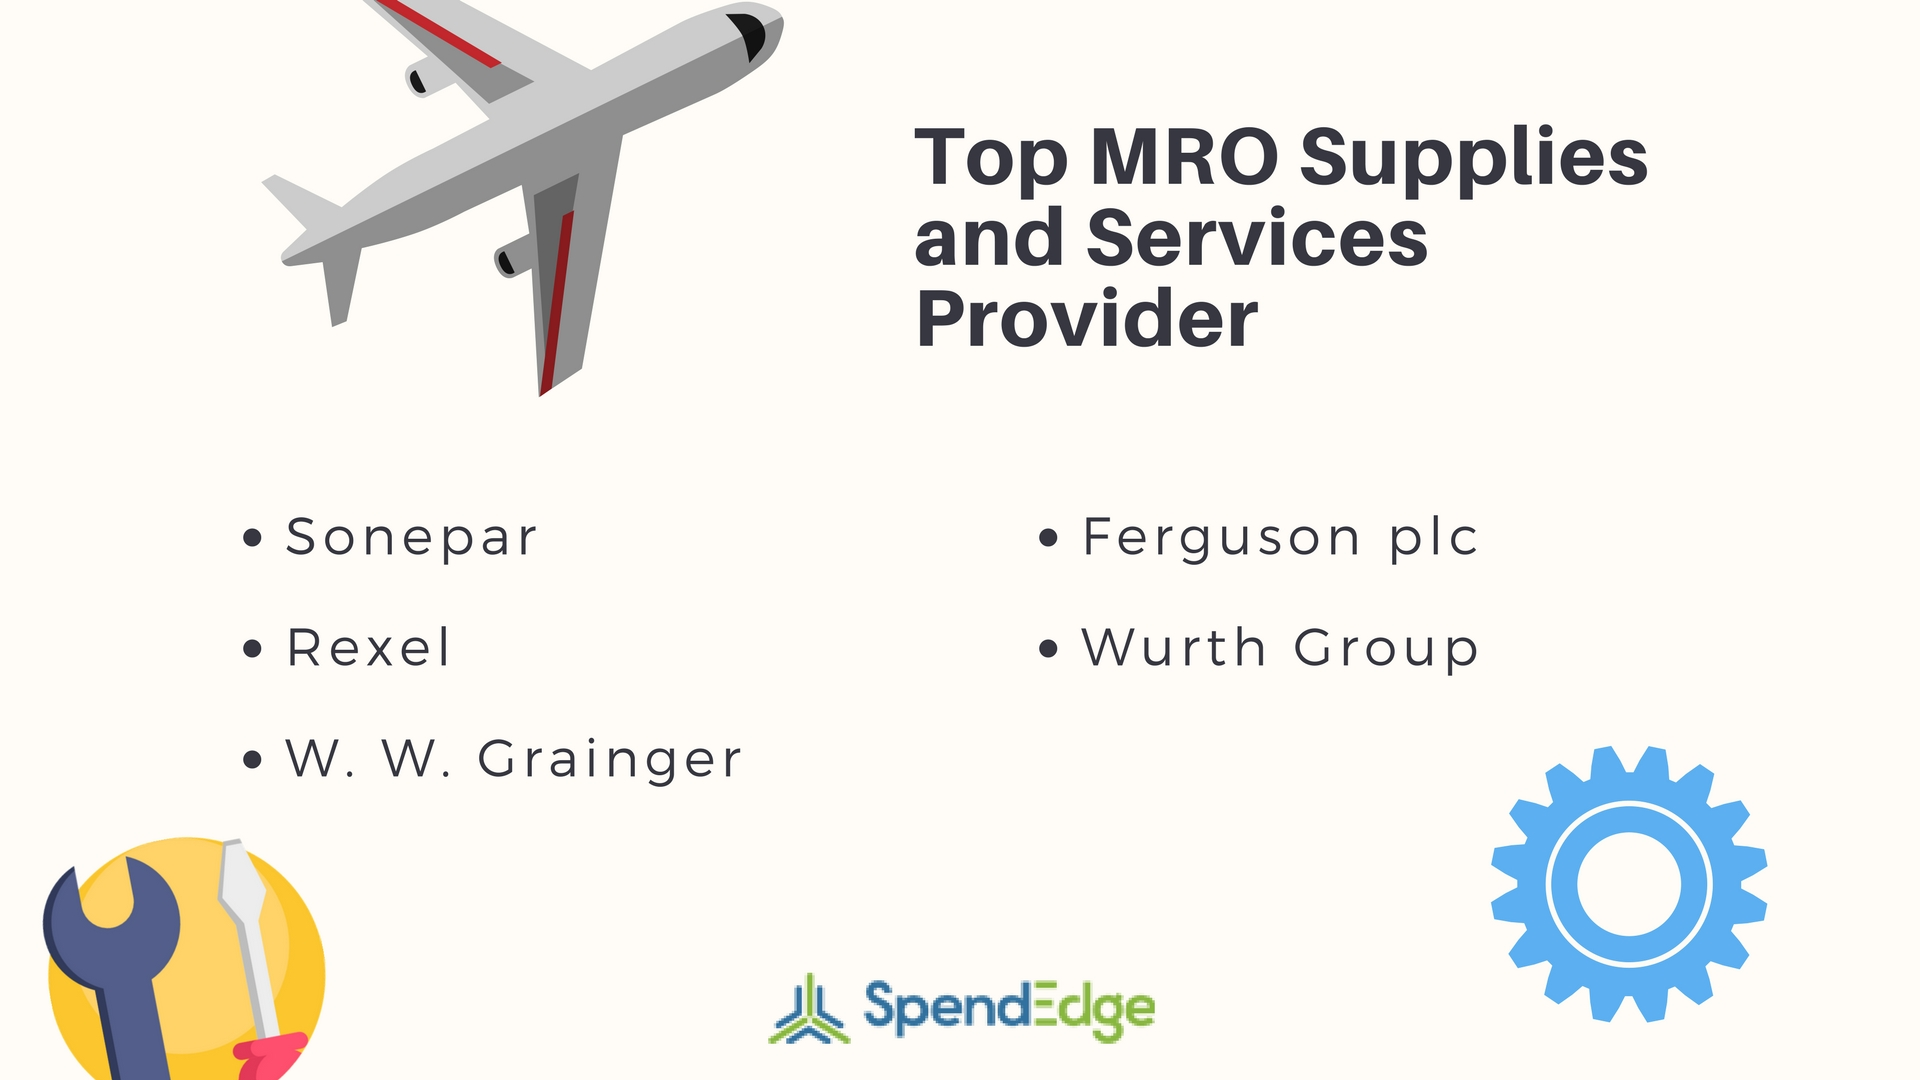 Top MRO Supplies and Services Provider